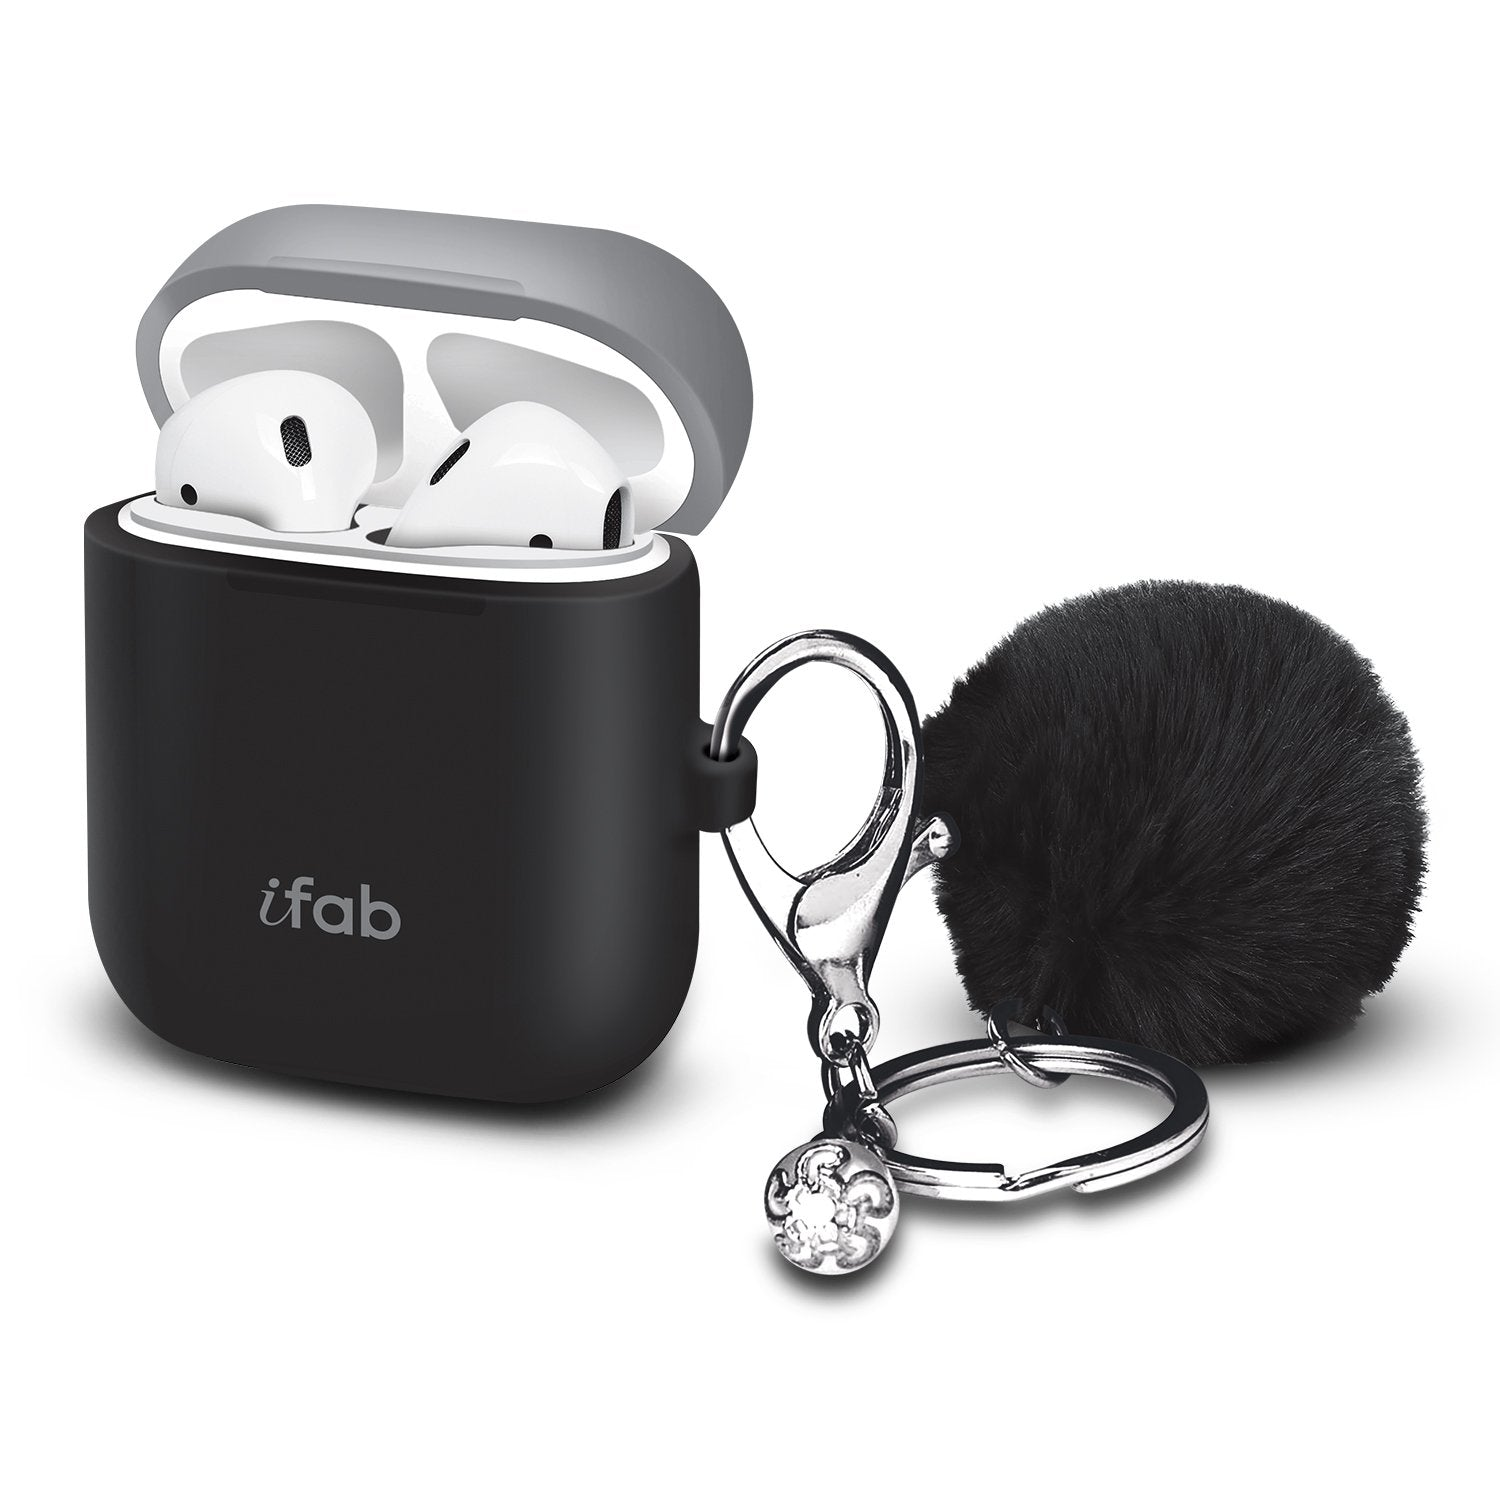 iFab Silicone Airpods Case Cover Black - VarietySell